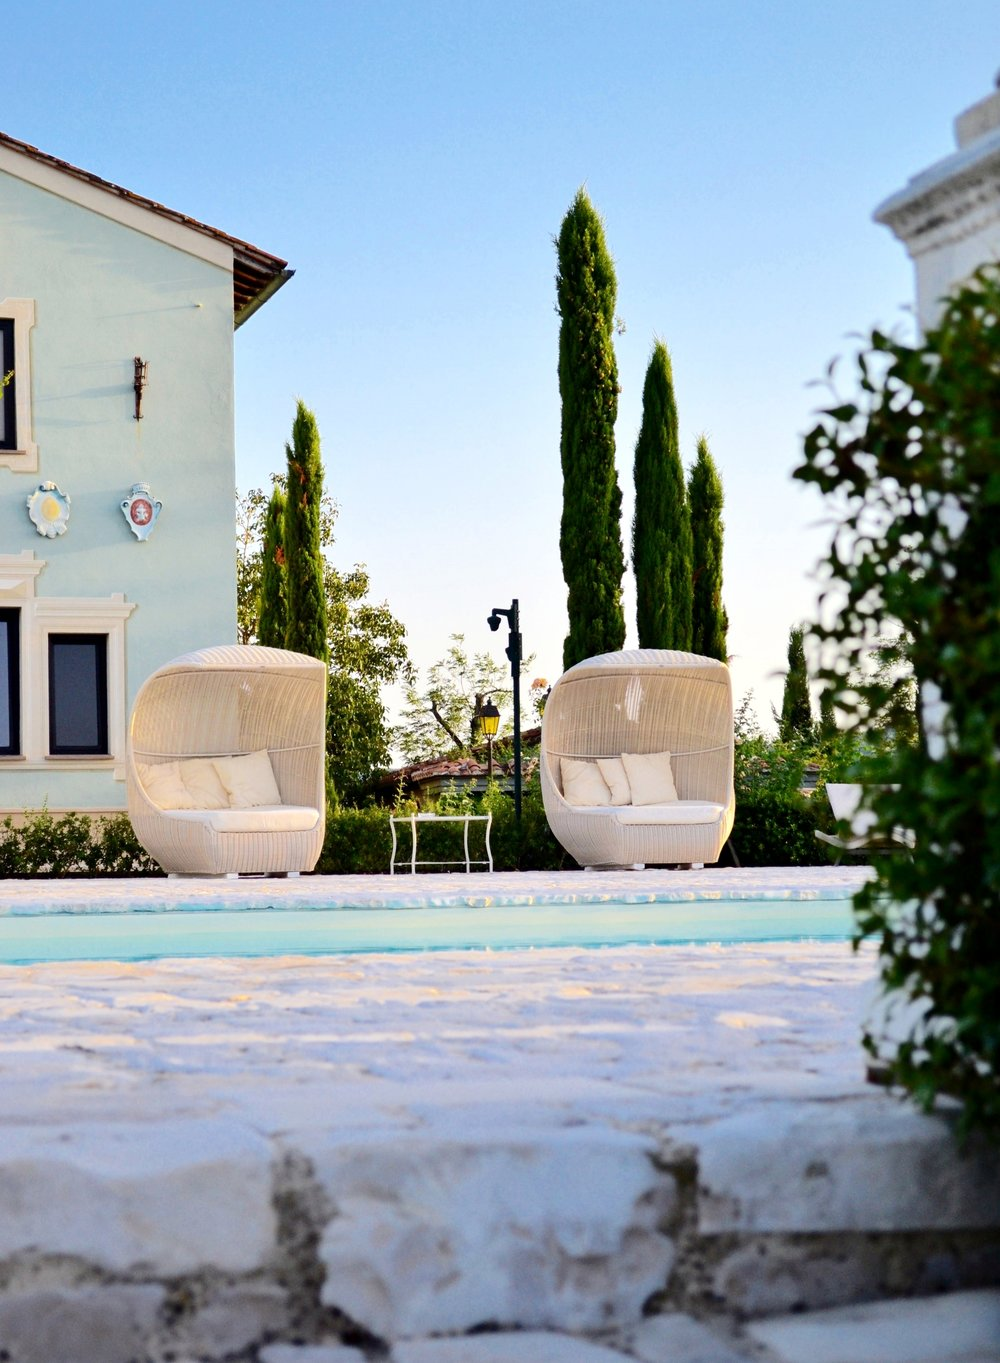 Tuscany Italy  Luxury Boutique Hotel